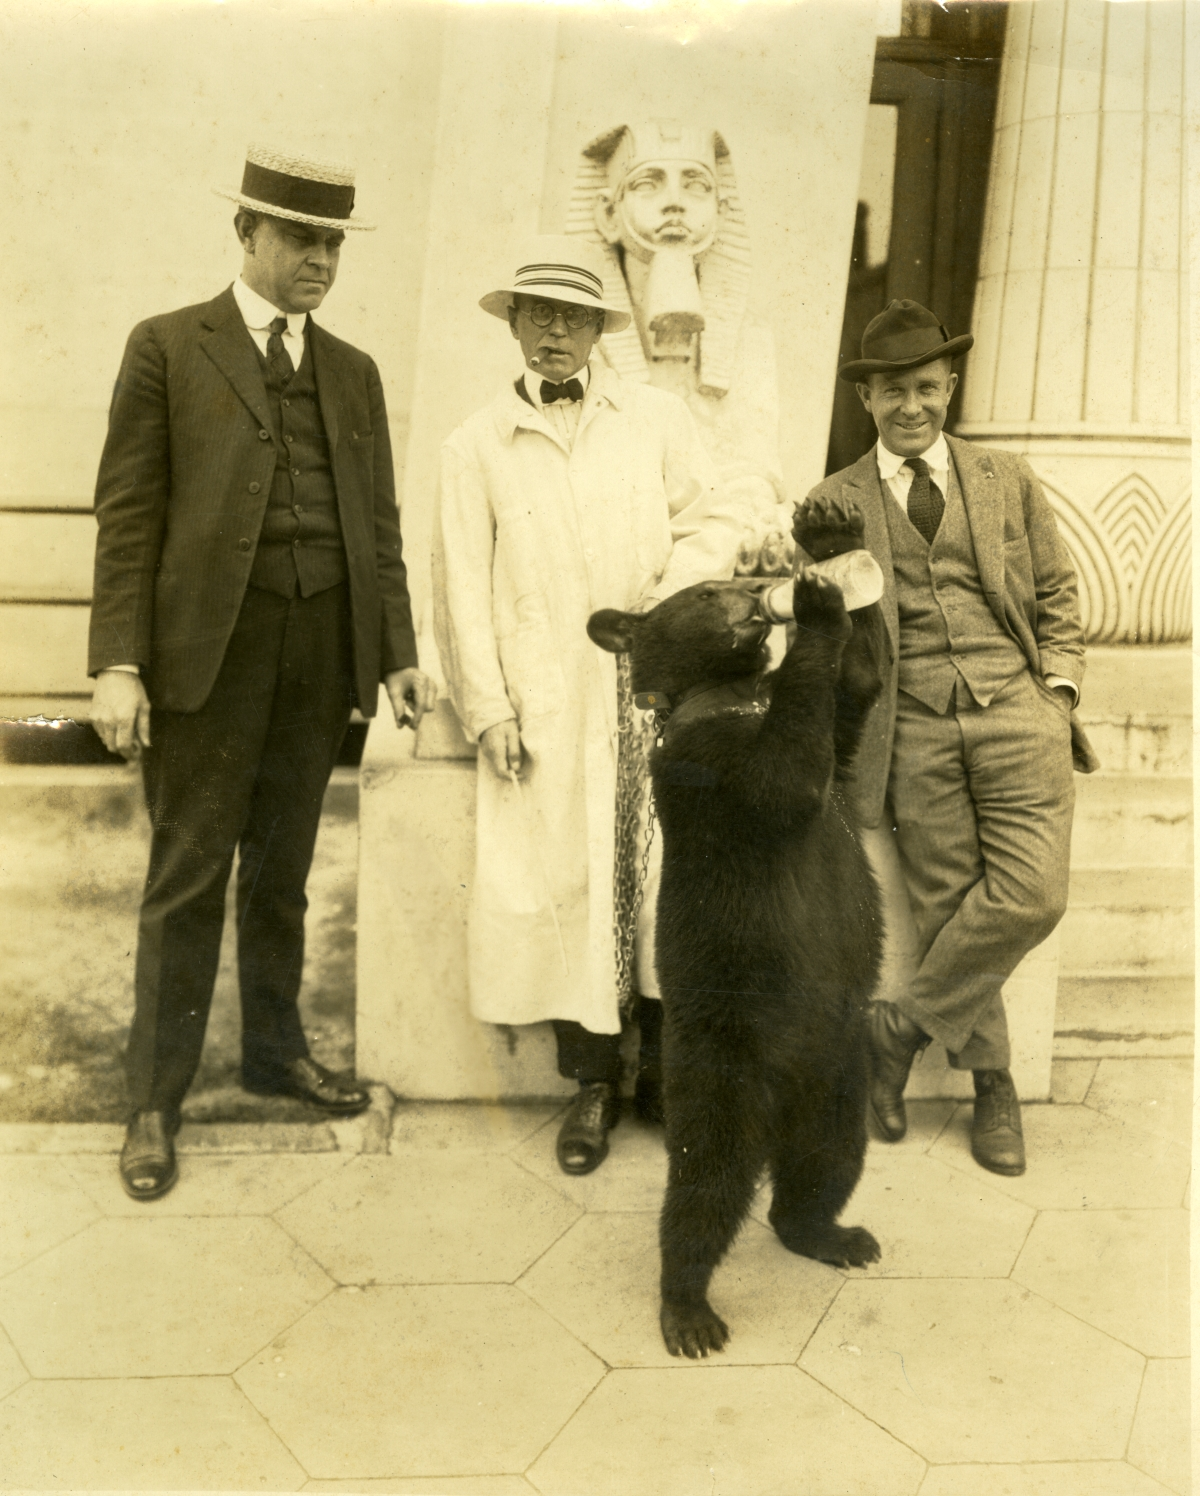 Men with a bear in front of the Morocco Temple in Jacksonville.